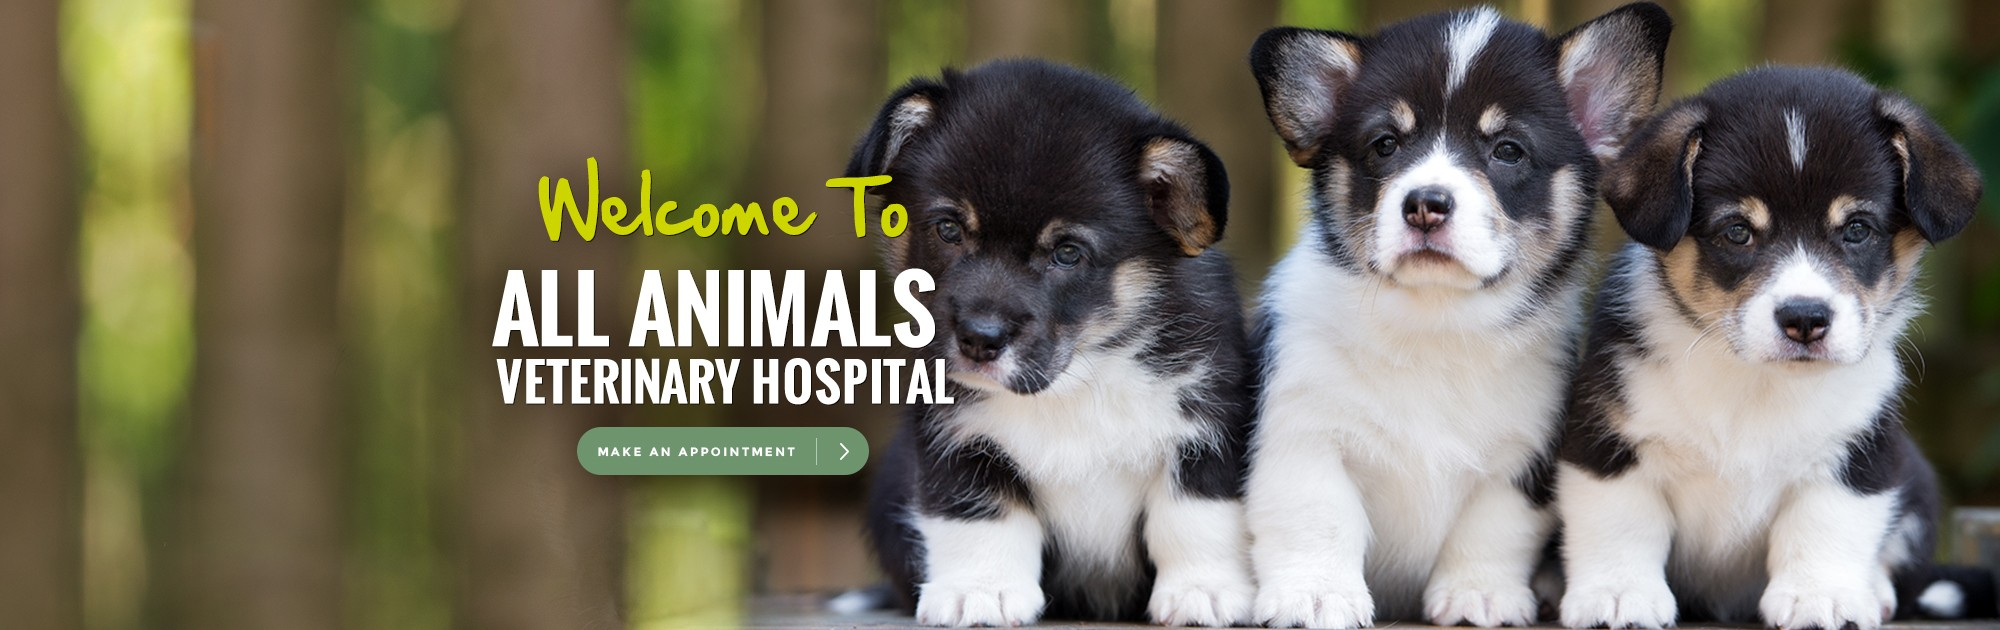 Welcome to All Animals Veterinary Hospital. Make an Appointment